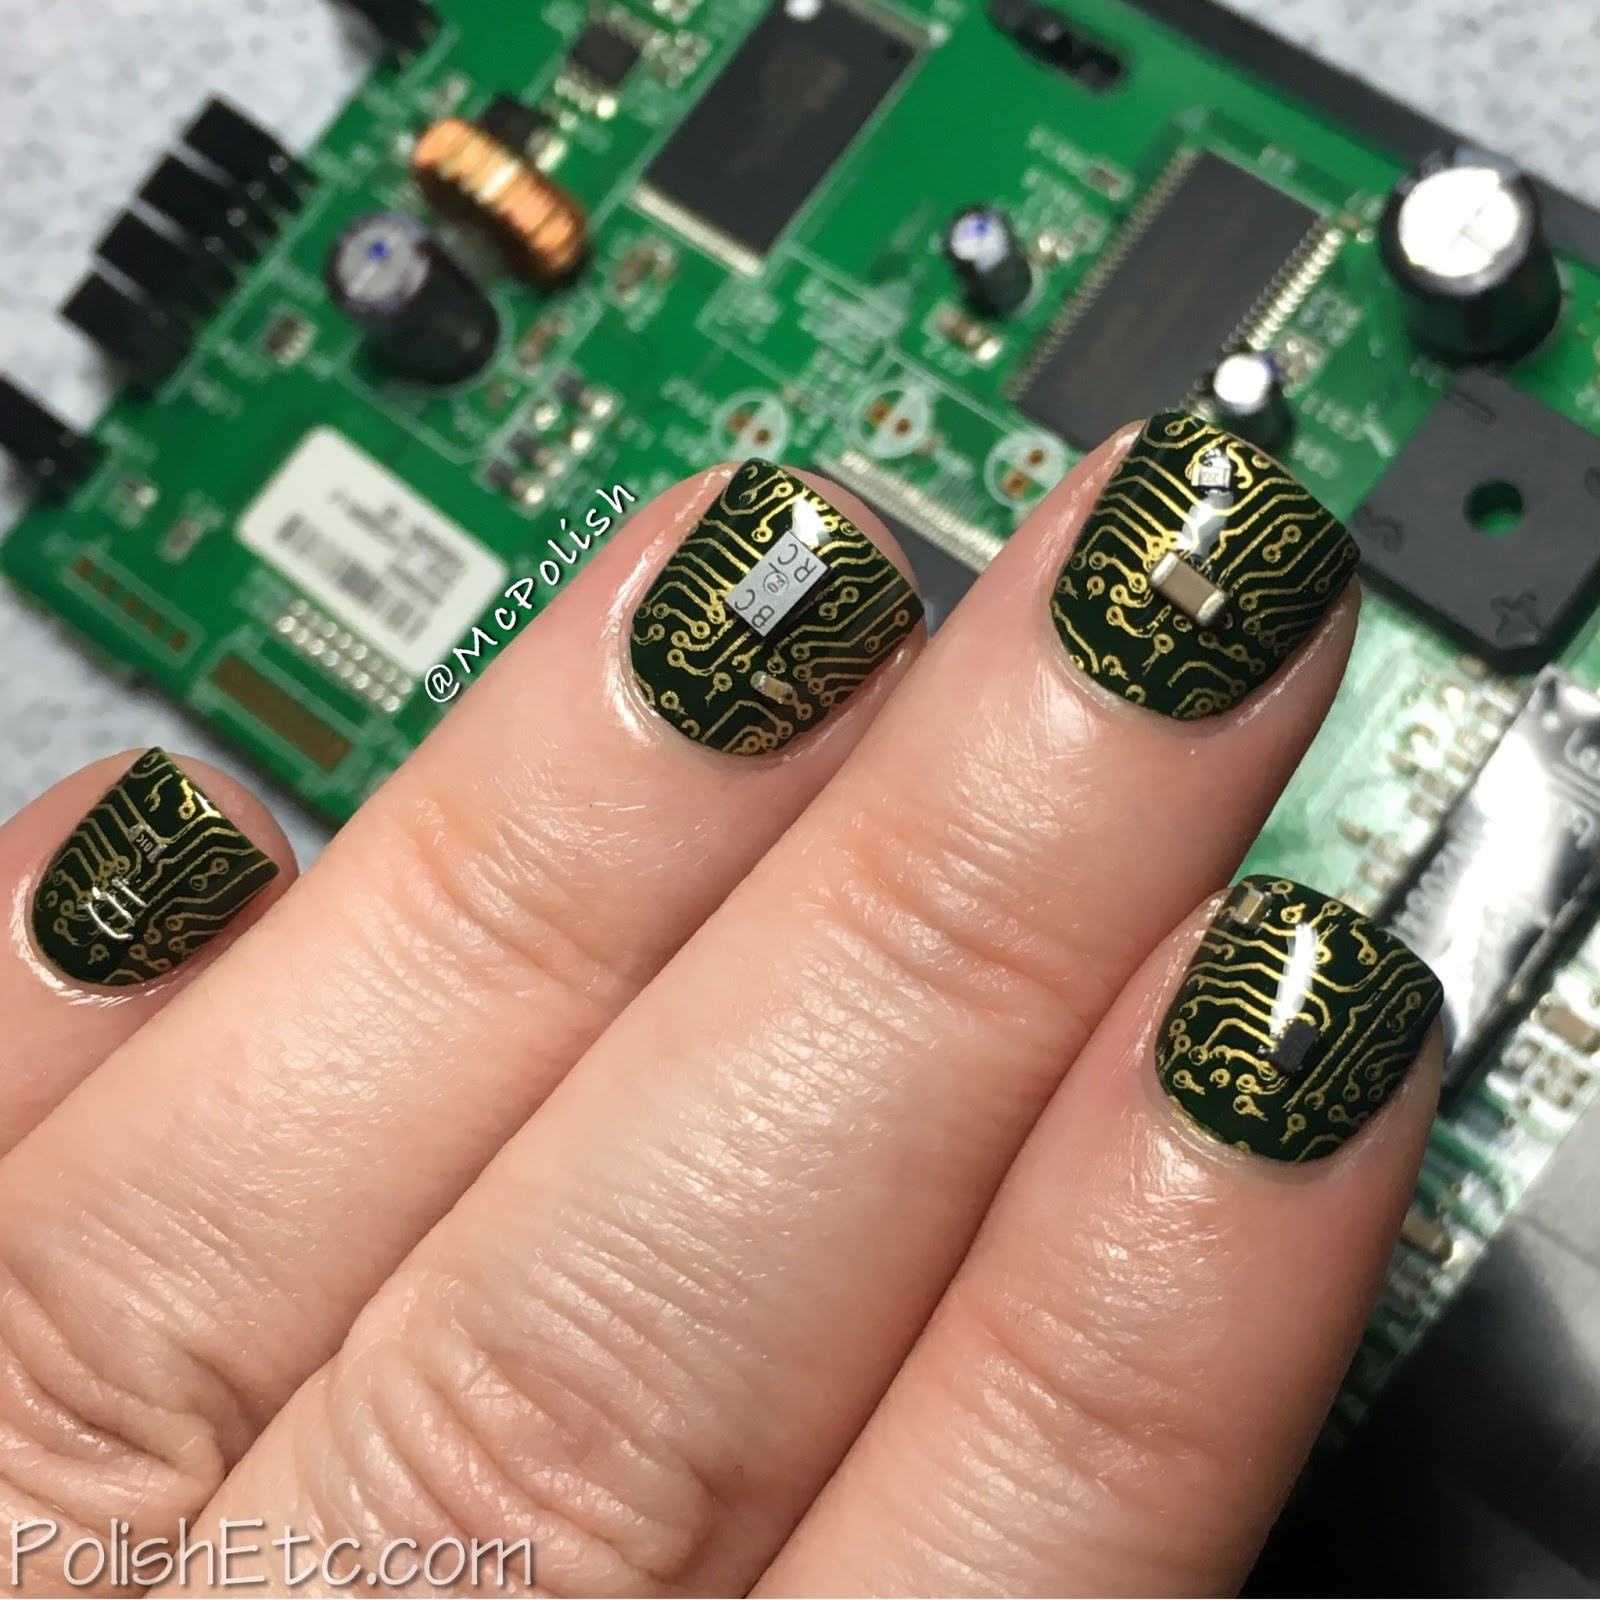 Delicate Print Nails for the #31DC2017Weekly - McPolish - motherboard nails